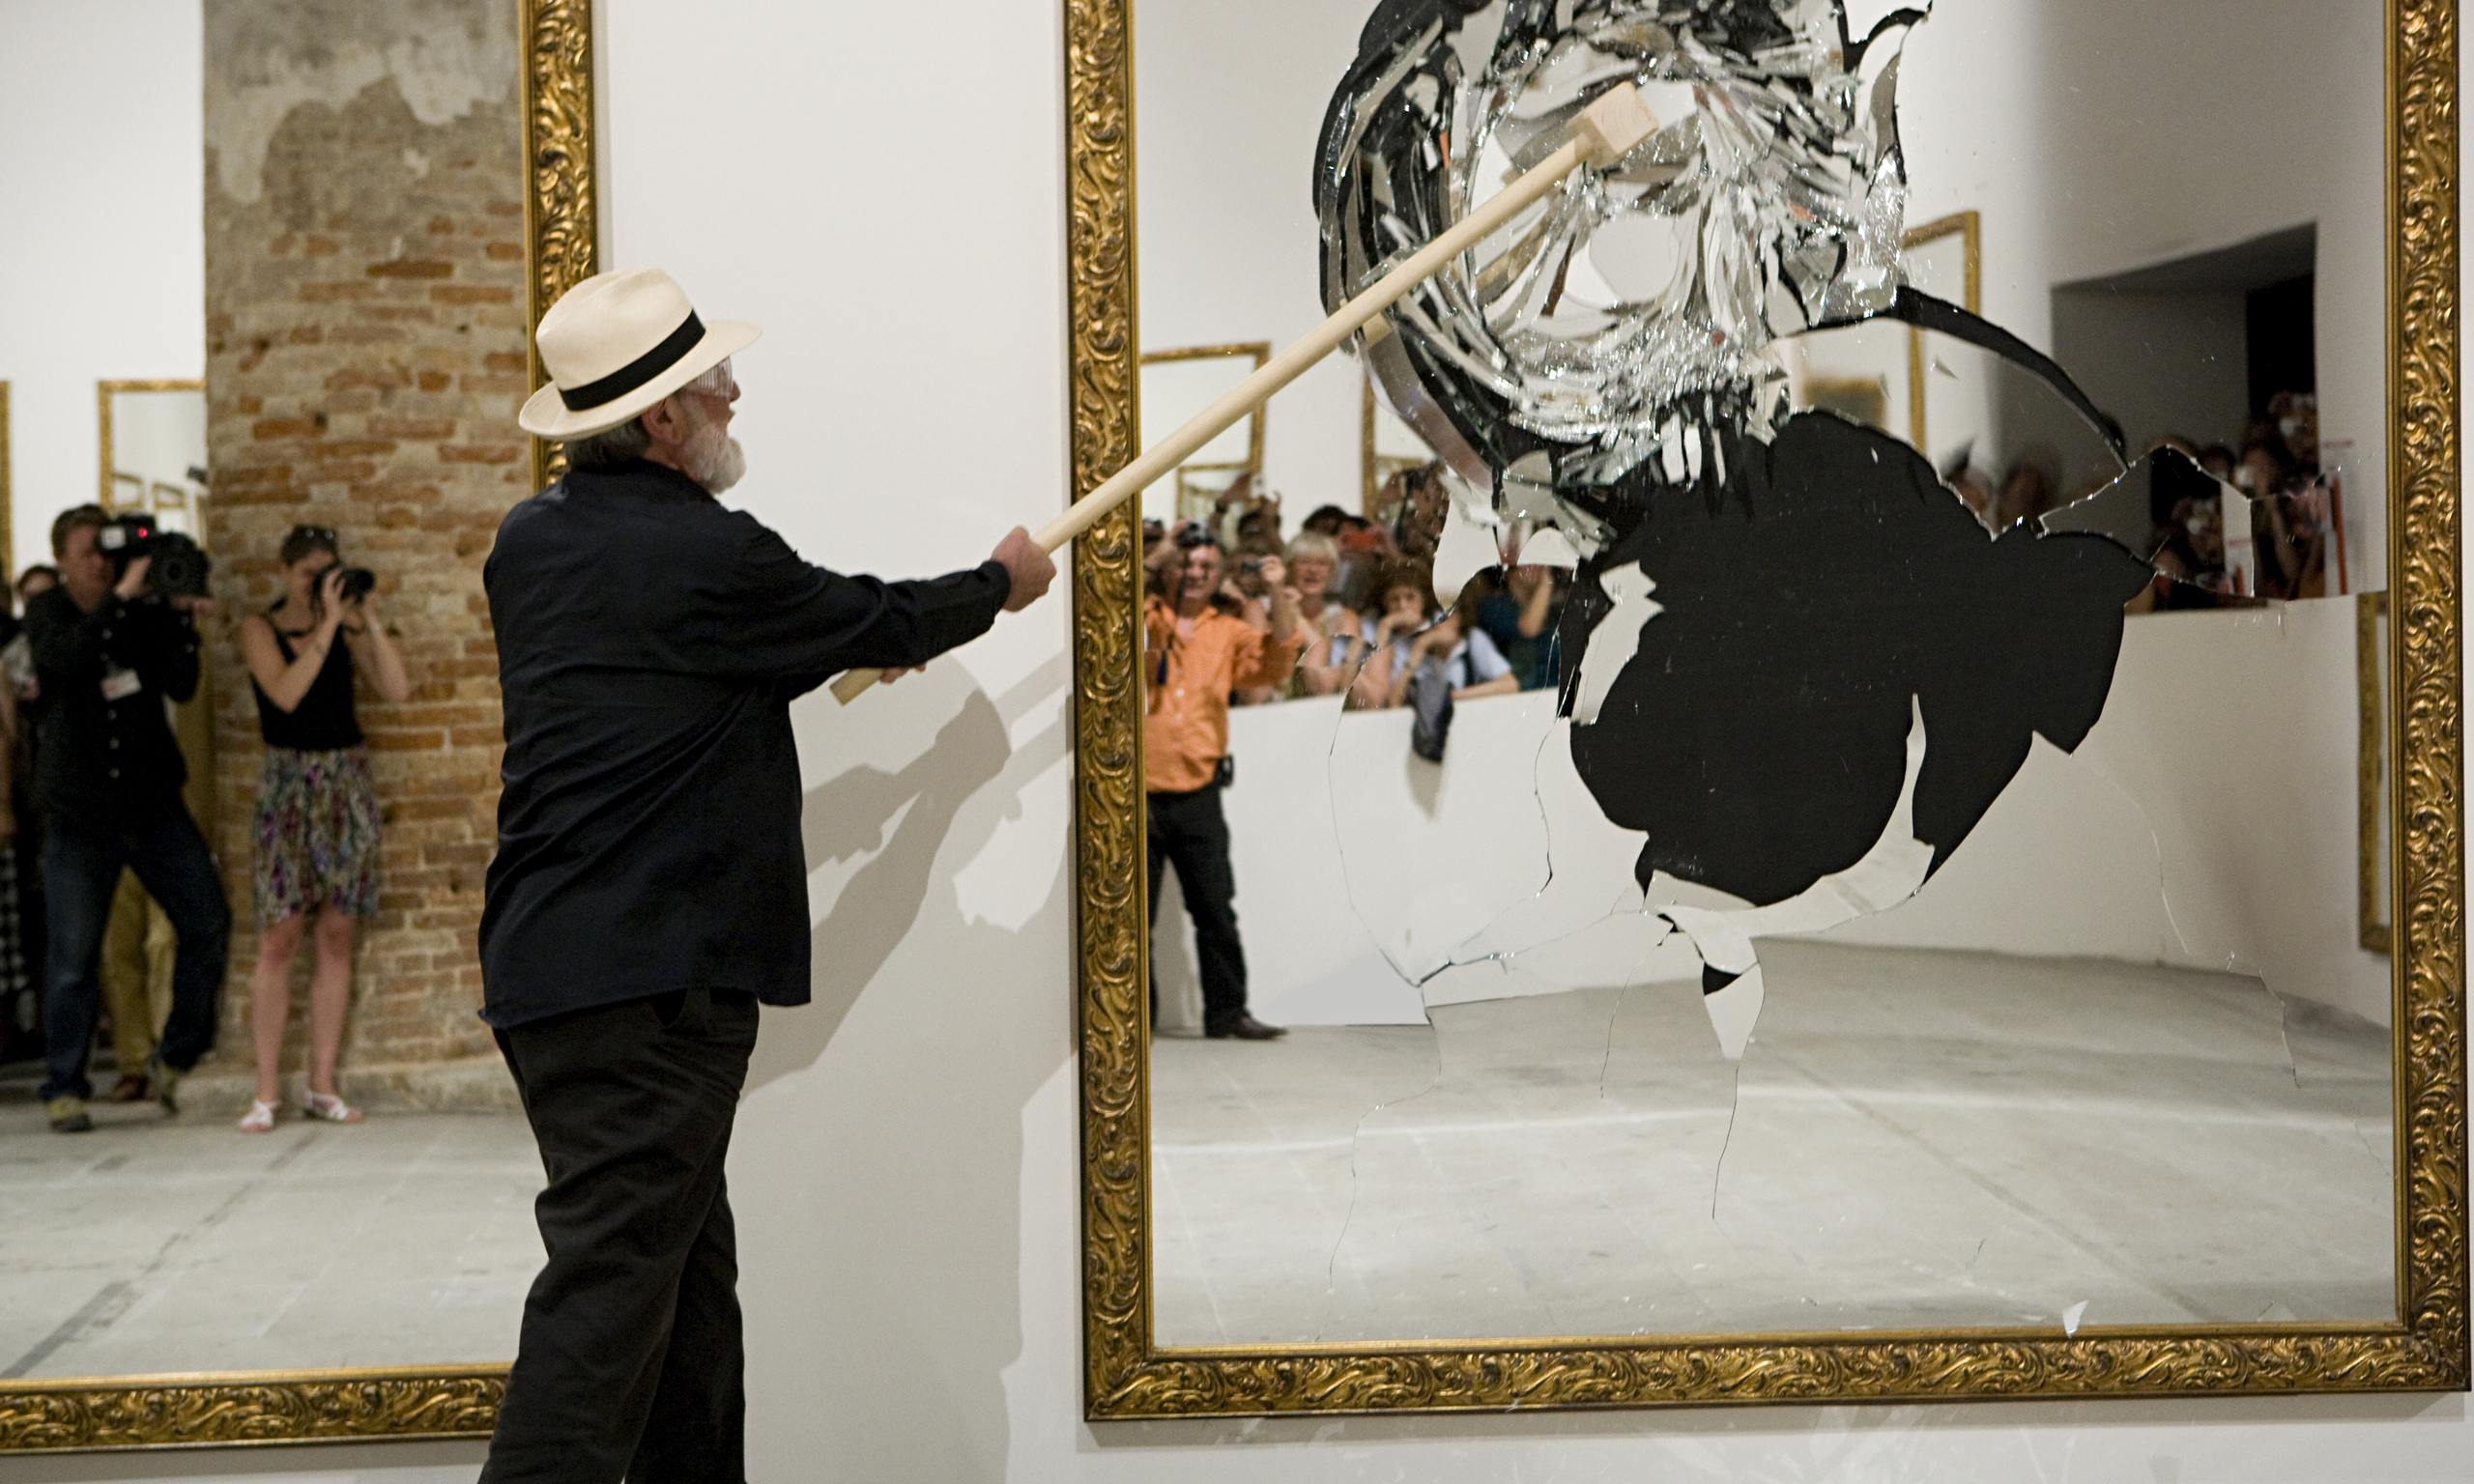 https://static-secure.guim.co.uk/sys-images/Guardian/Pix/pictures/2014/5/27/1401203946653/pistoletto-mirror-smashin-014.jpg